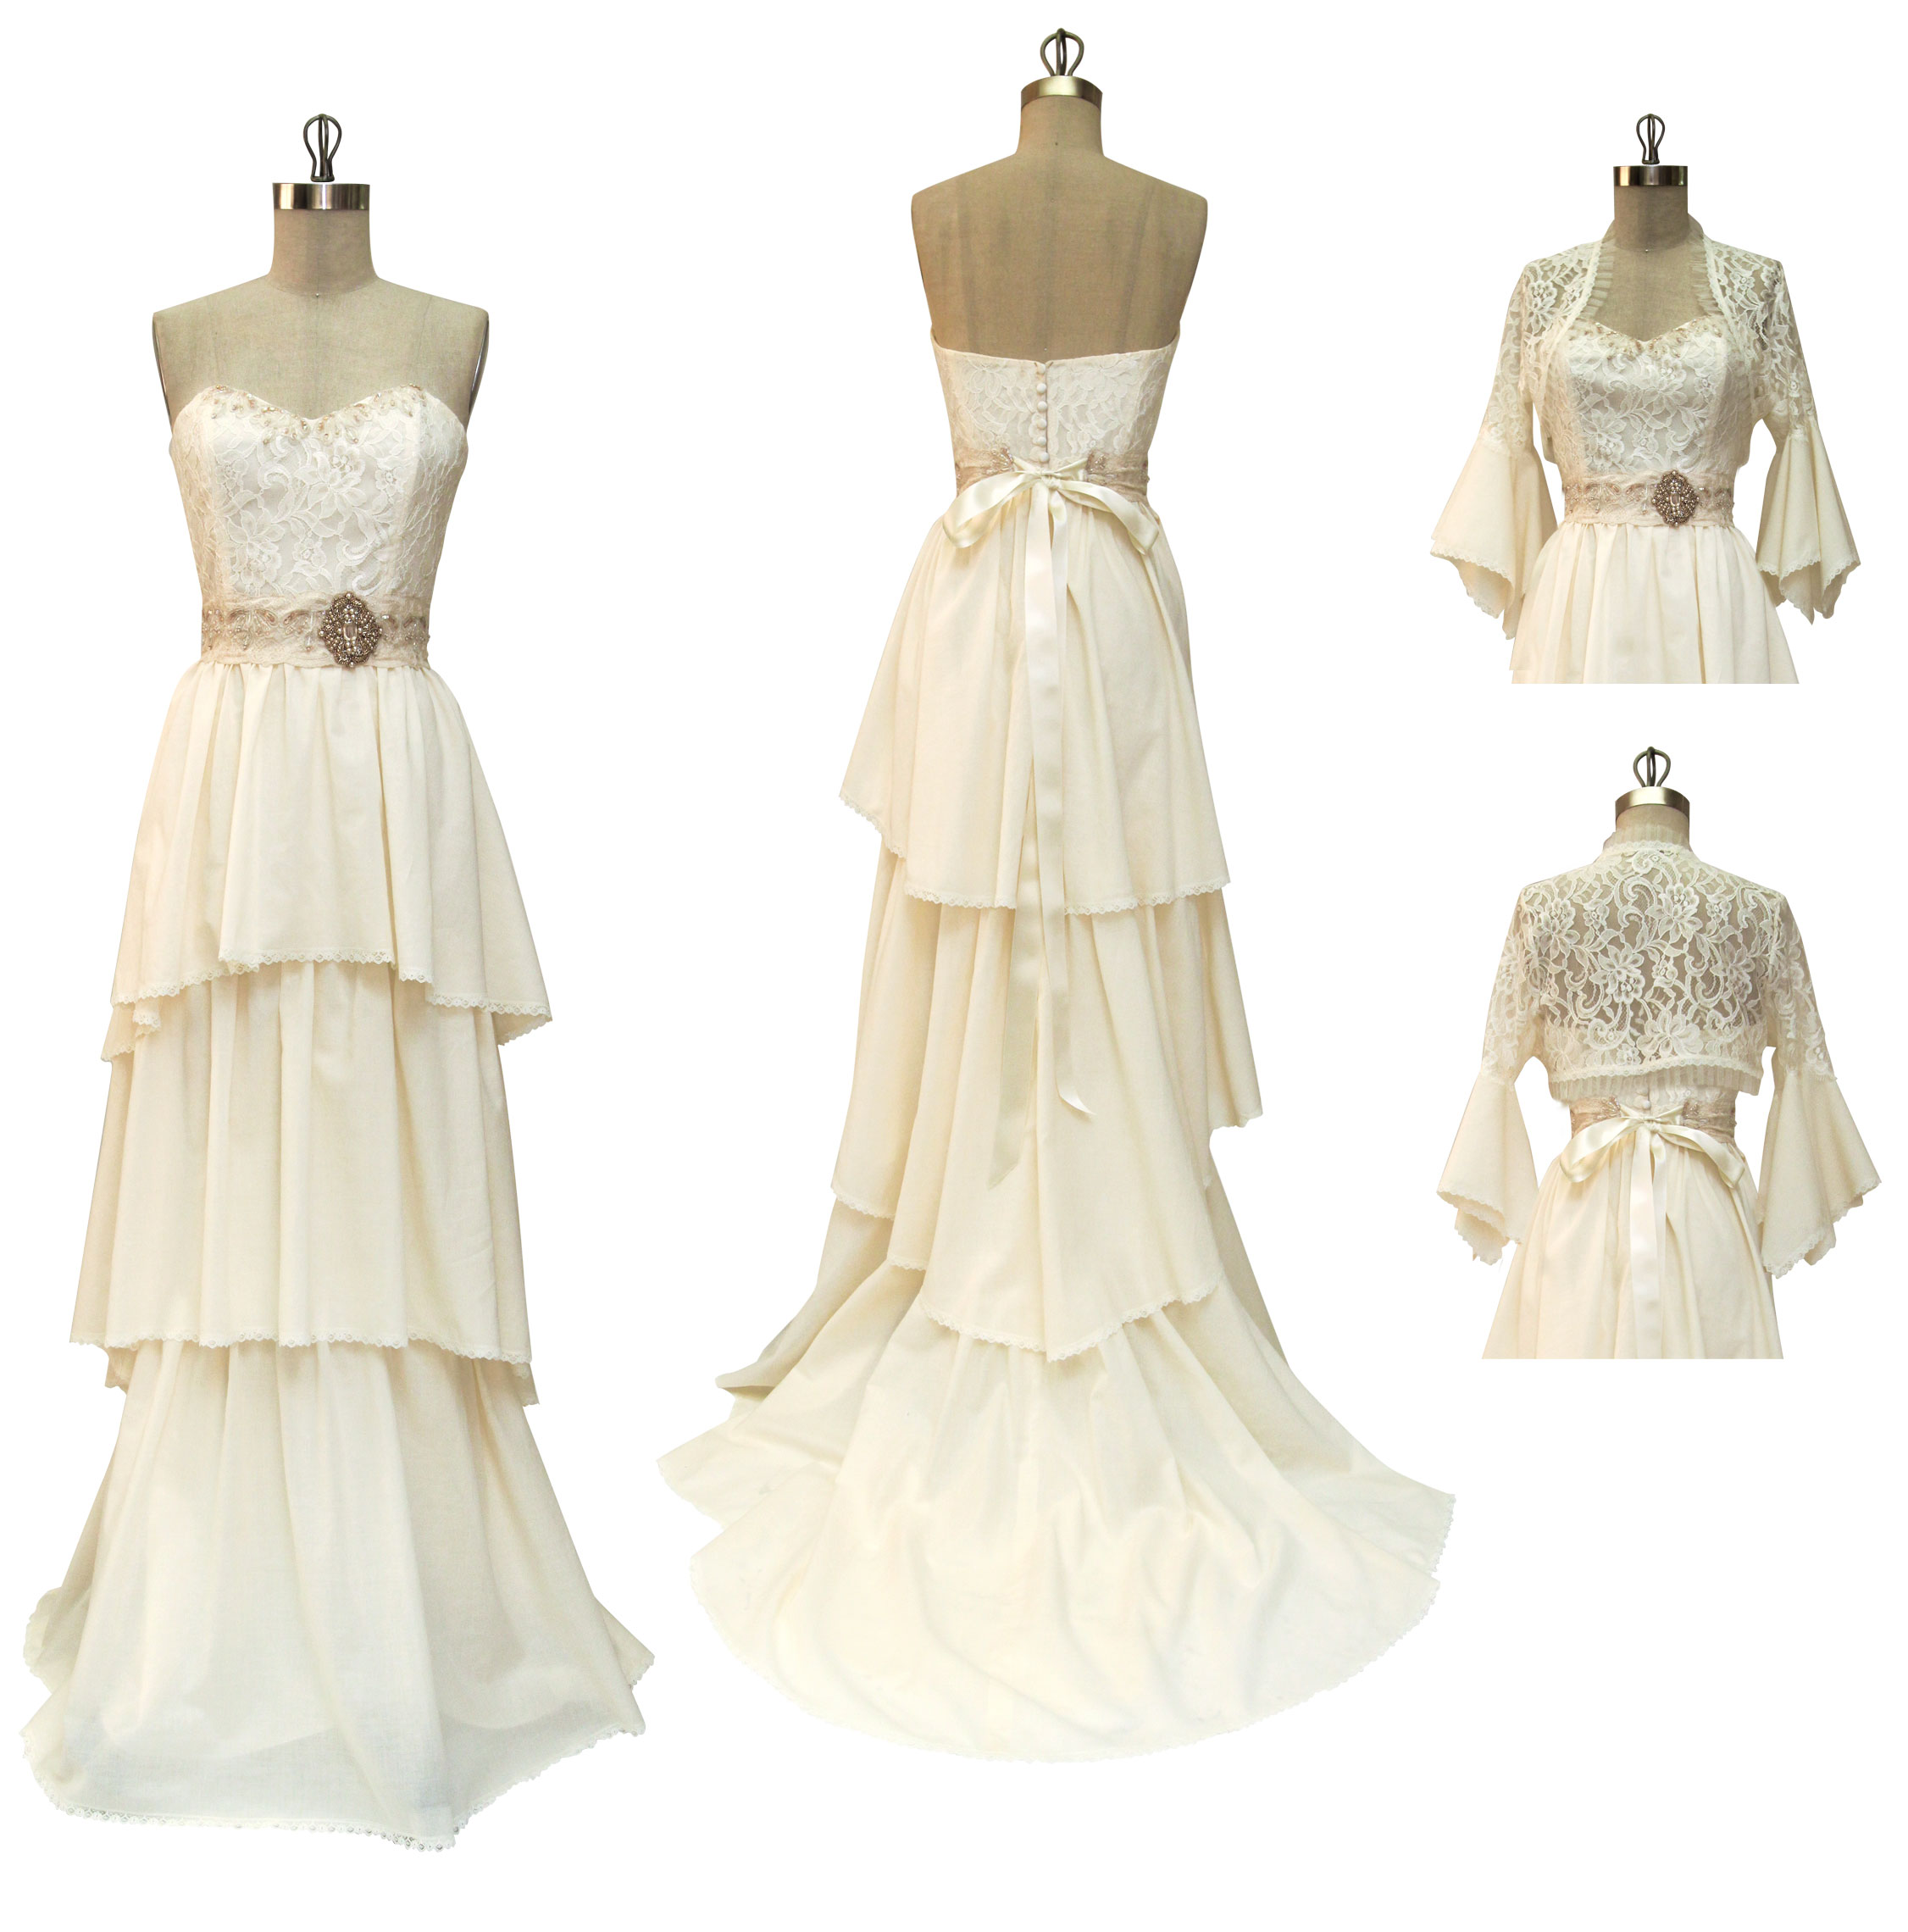 wedding dresses luisa sweetheart ivory bridal gown claire pettibone ivory tiered skirt vintage inspired